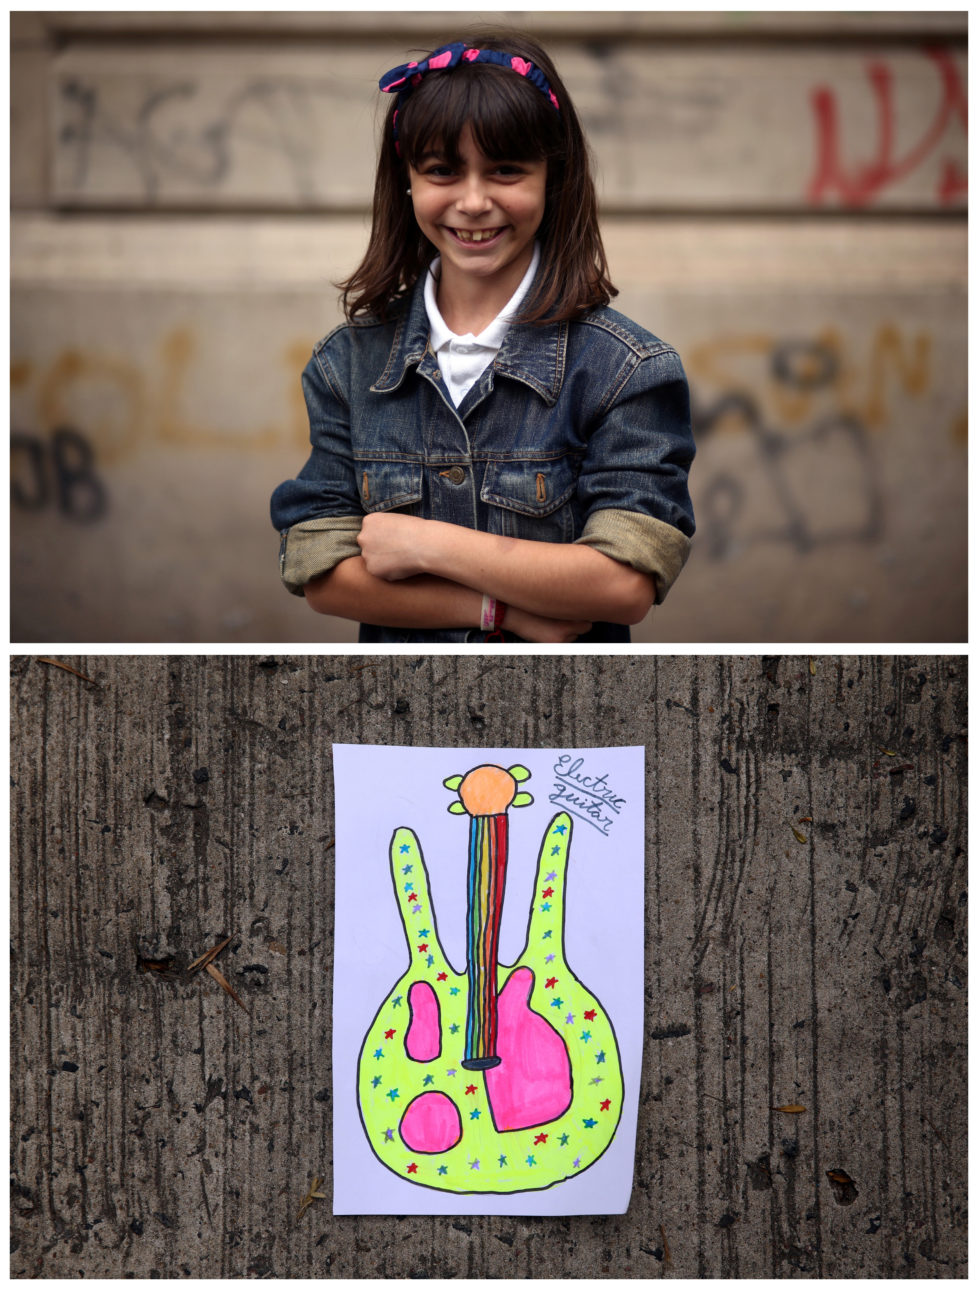 "A combination picture shows Morena Fay, 9, posing for a photograph (top) and her drawing of what she wants to get for Christmas from Santa, in Buenos Aires, Argentina, November 16, 2016. ""I want to ask Papa Noel (Santa Claus) to bring me an electric guitar this Christmas, because I love music and I've wanted one for a long time,"" Morena said. Reuters photographers around the world asked children to draw what they wanted to receive from Santa for Christmas. REUTERS/Marcos Brindicci SEARCH ""CHRISTMAS WISHES"" FOR THIS STORY. SEARCH ""WIDER IMAGE"" FOR ALL STORIES. - RTSV37B"